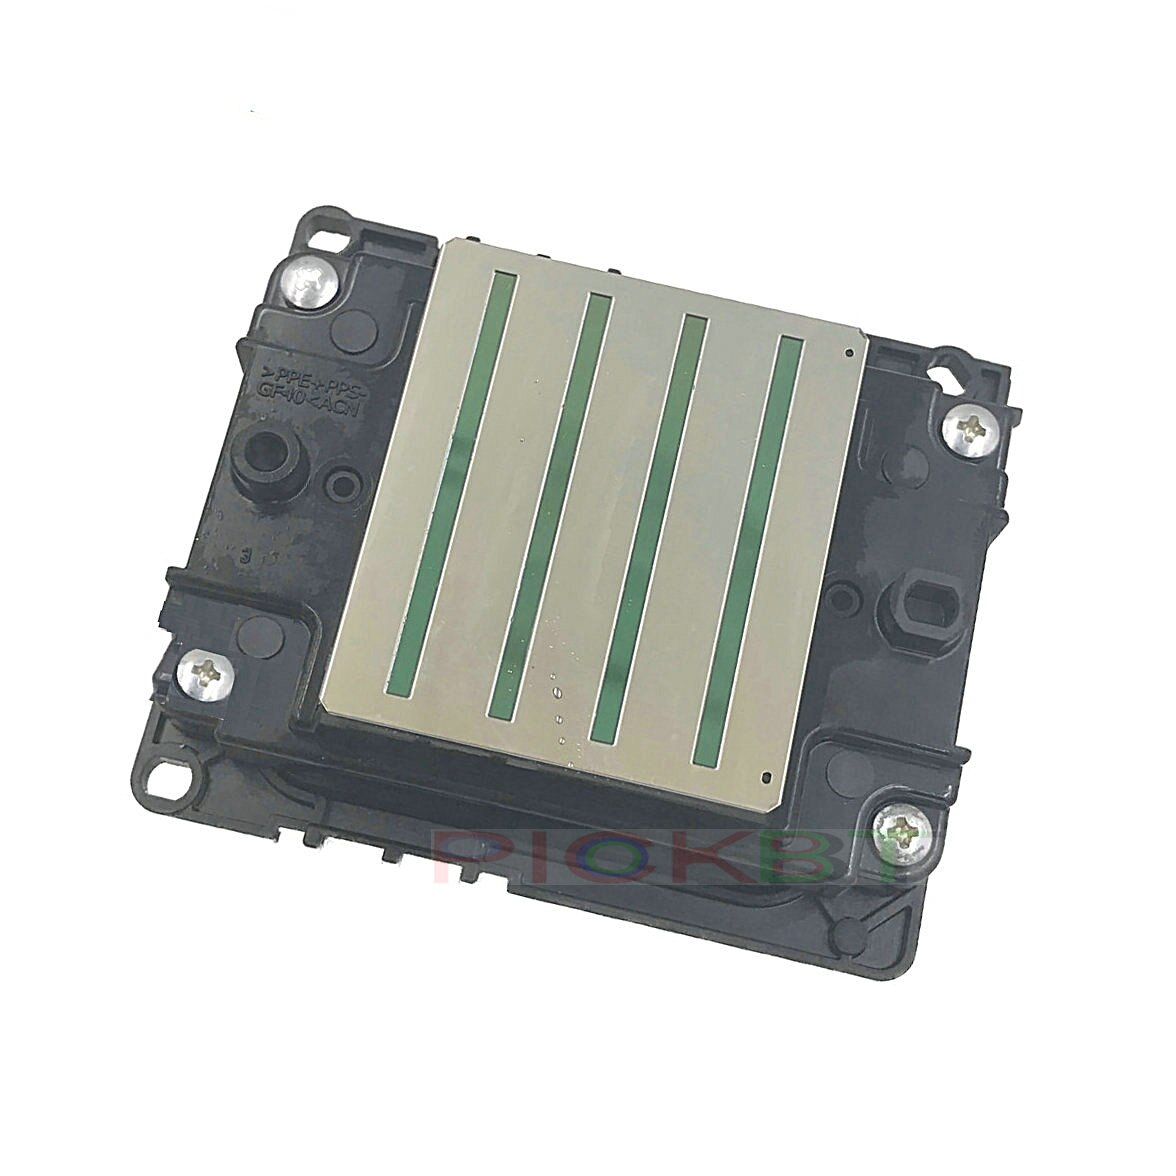 solvent printer human lcd board for epson dx5 print head USED printhead print head For Epson Printer head for WF4720 4730 WF4720 Fedar sublimation printer Fedar printer FD1900 4720